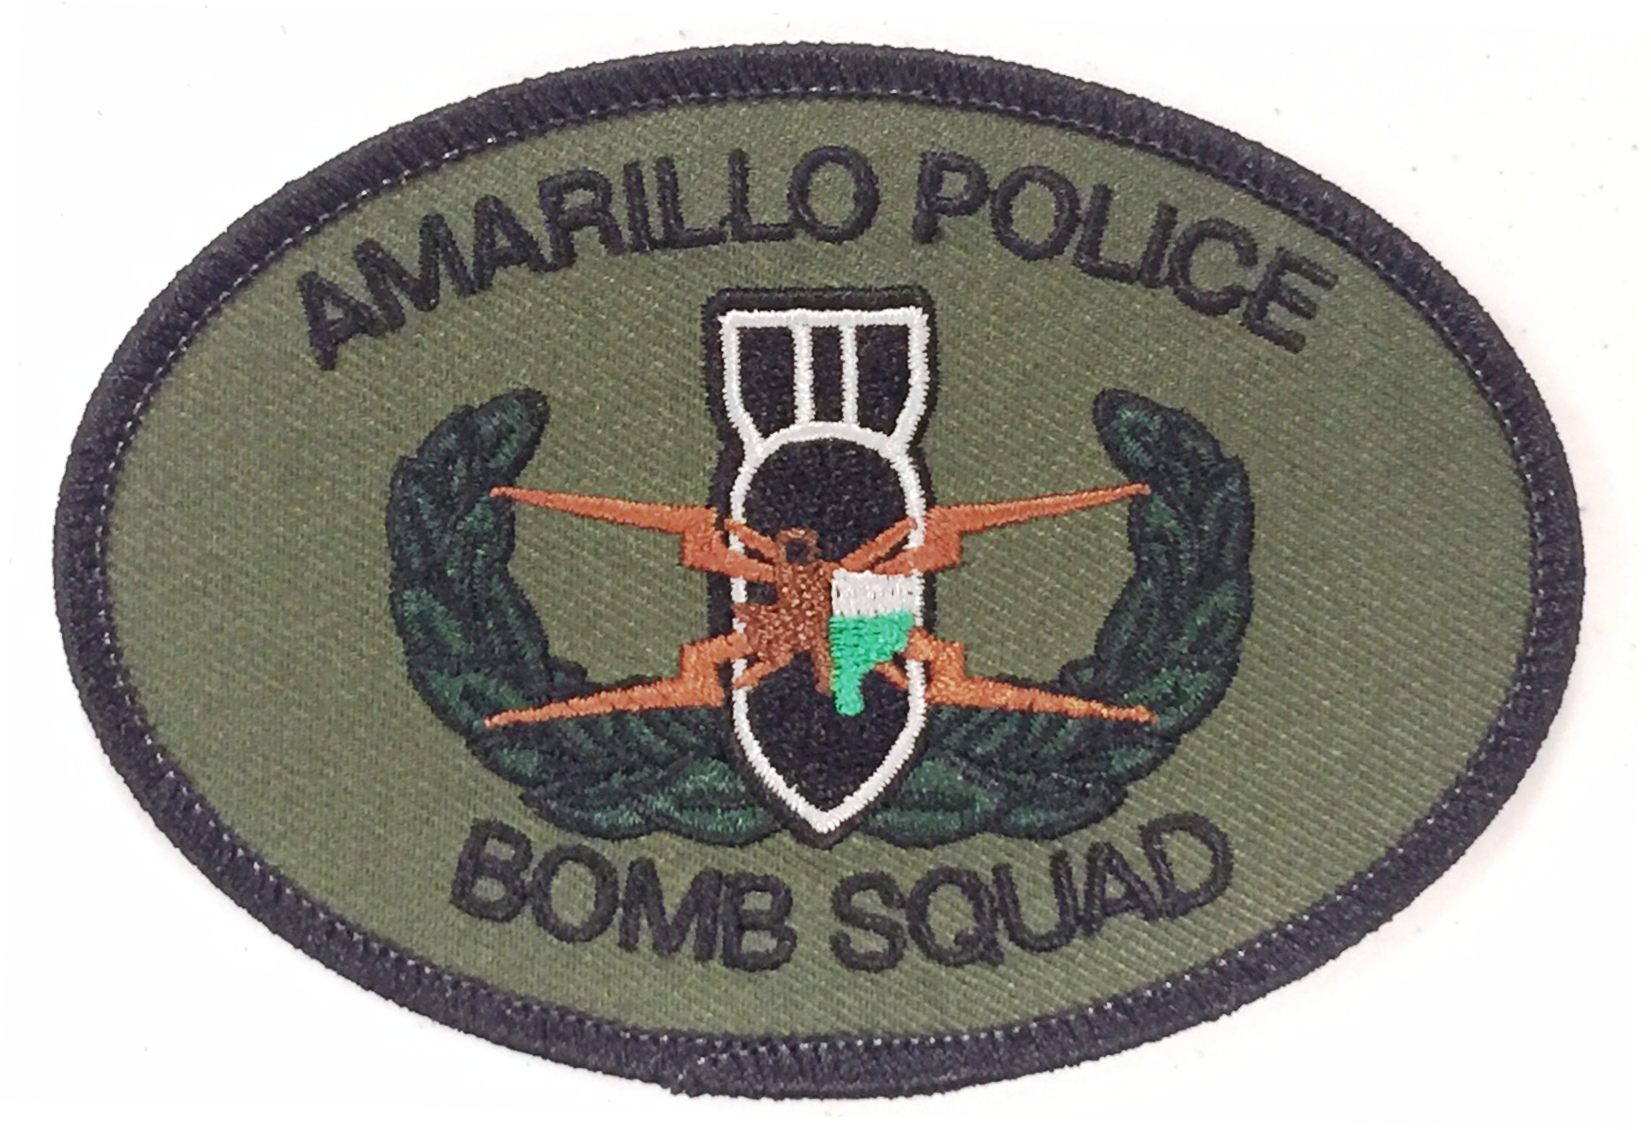 Bomb Squad Patch WEB SITE EDIT